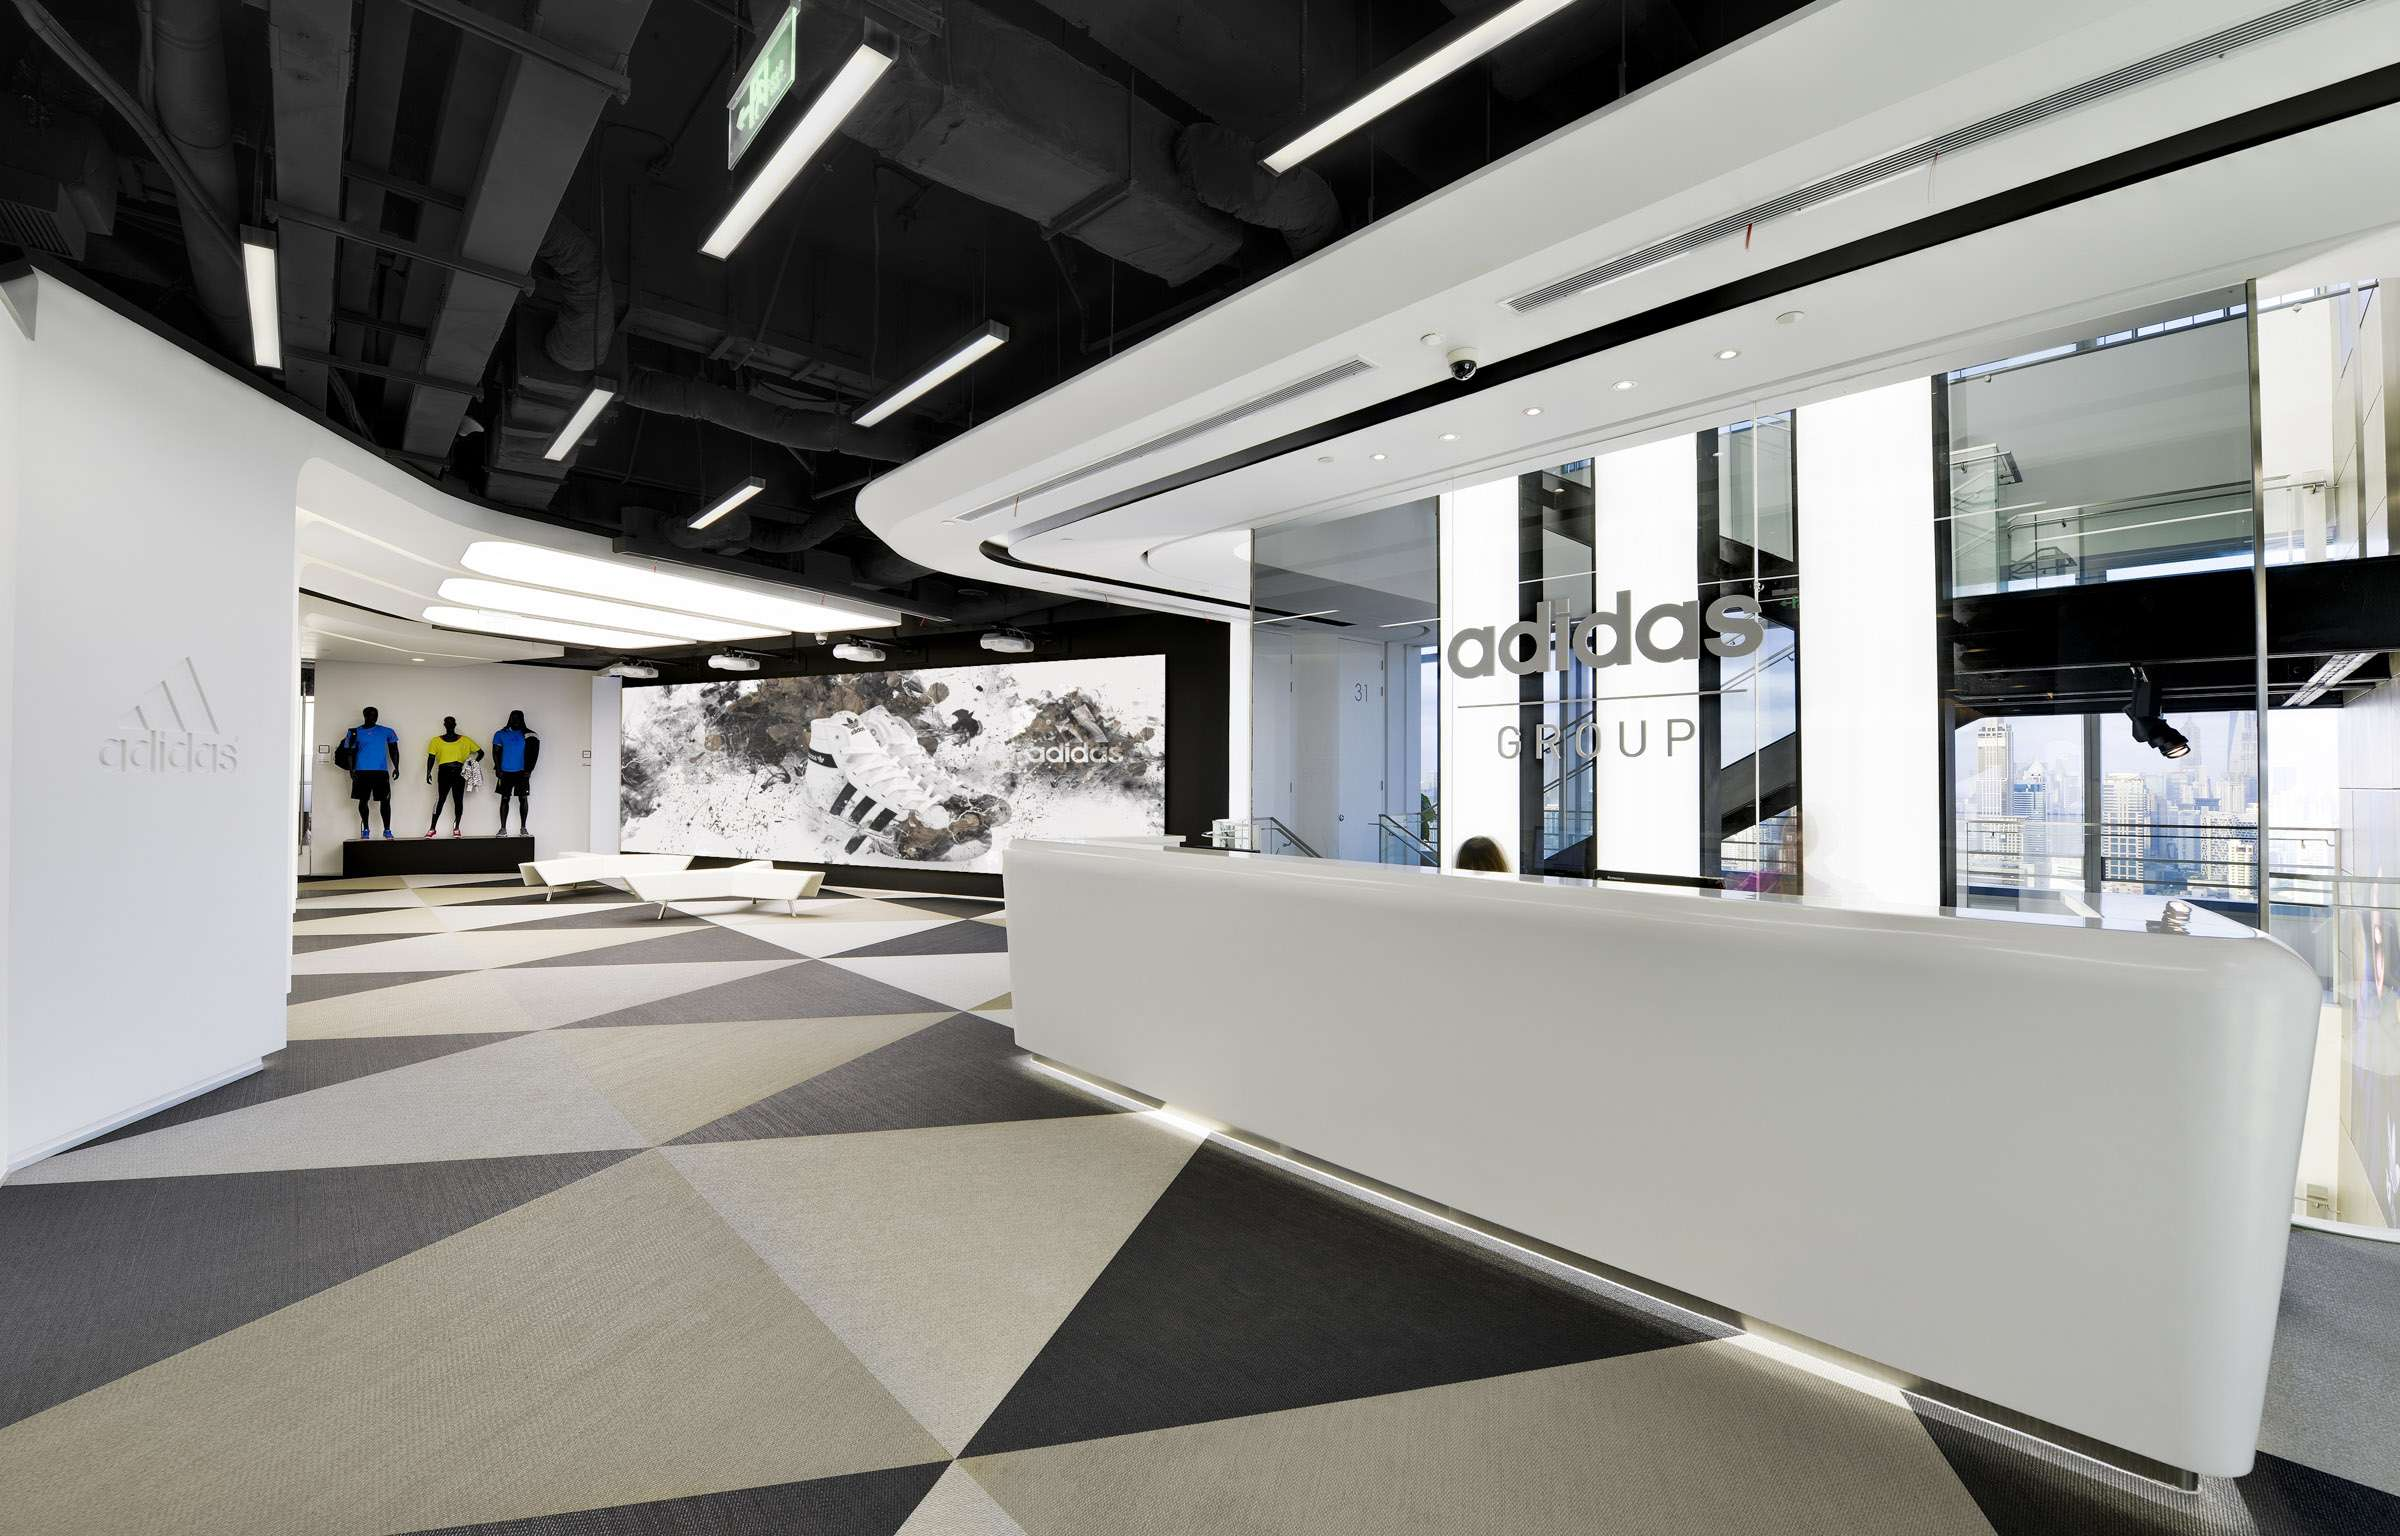 Triangle patterned woven vinyl flooring in the reception area at the office of Adidas in Shanghai, China